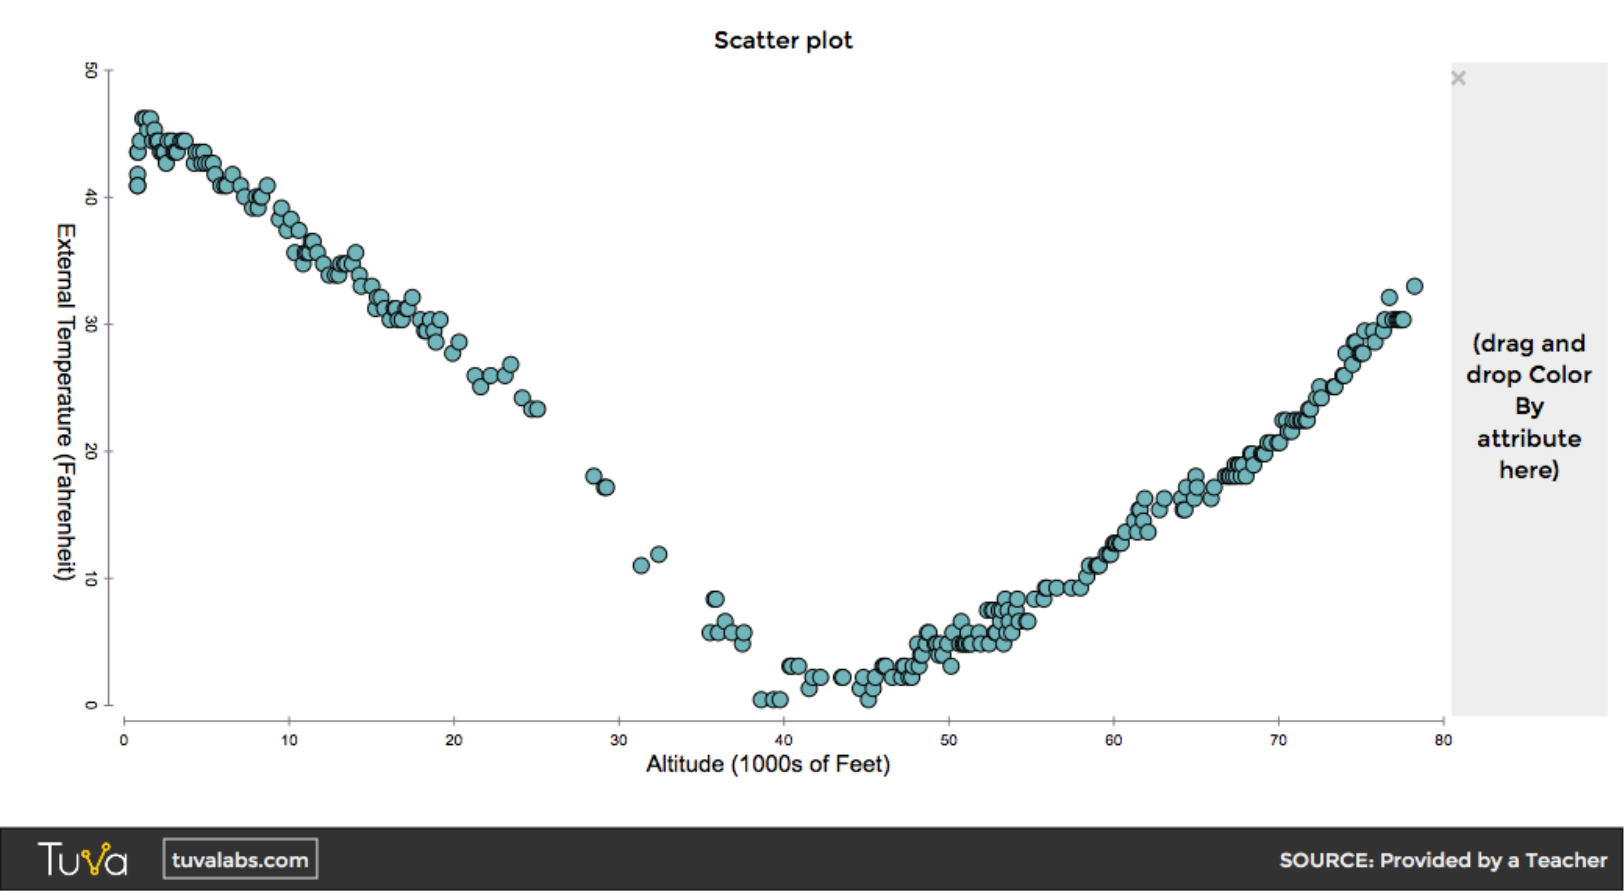 Scatter_plot_tuvalabs-2.png